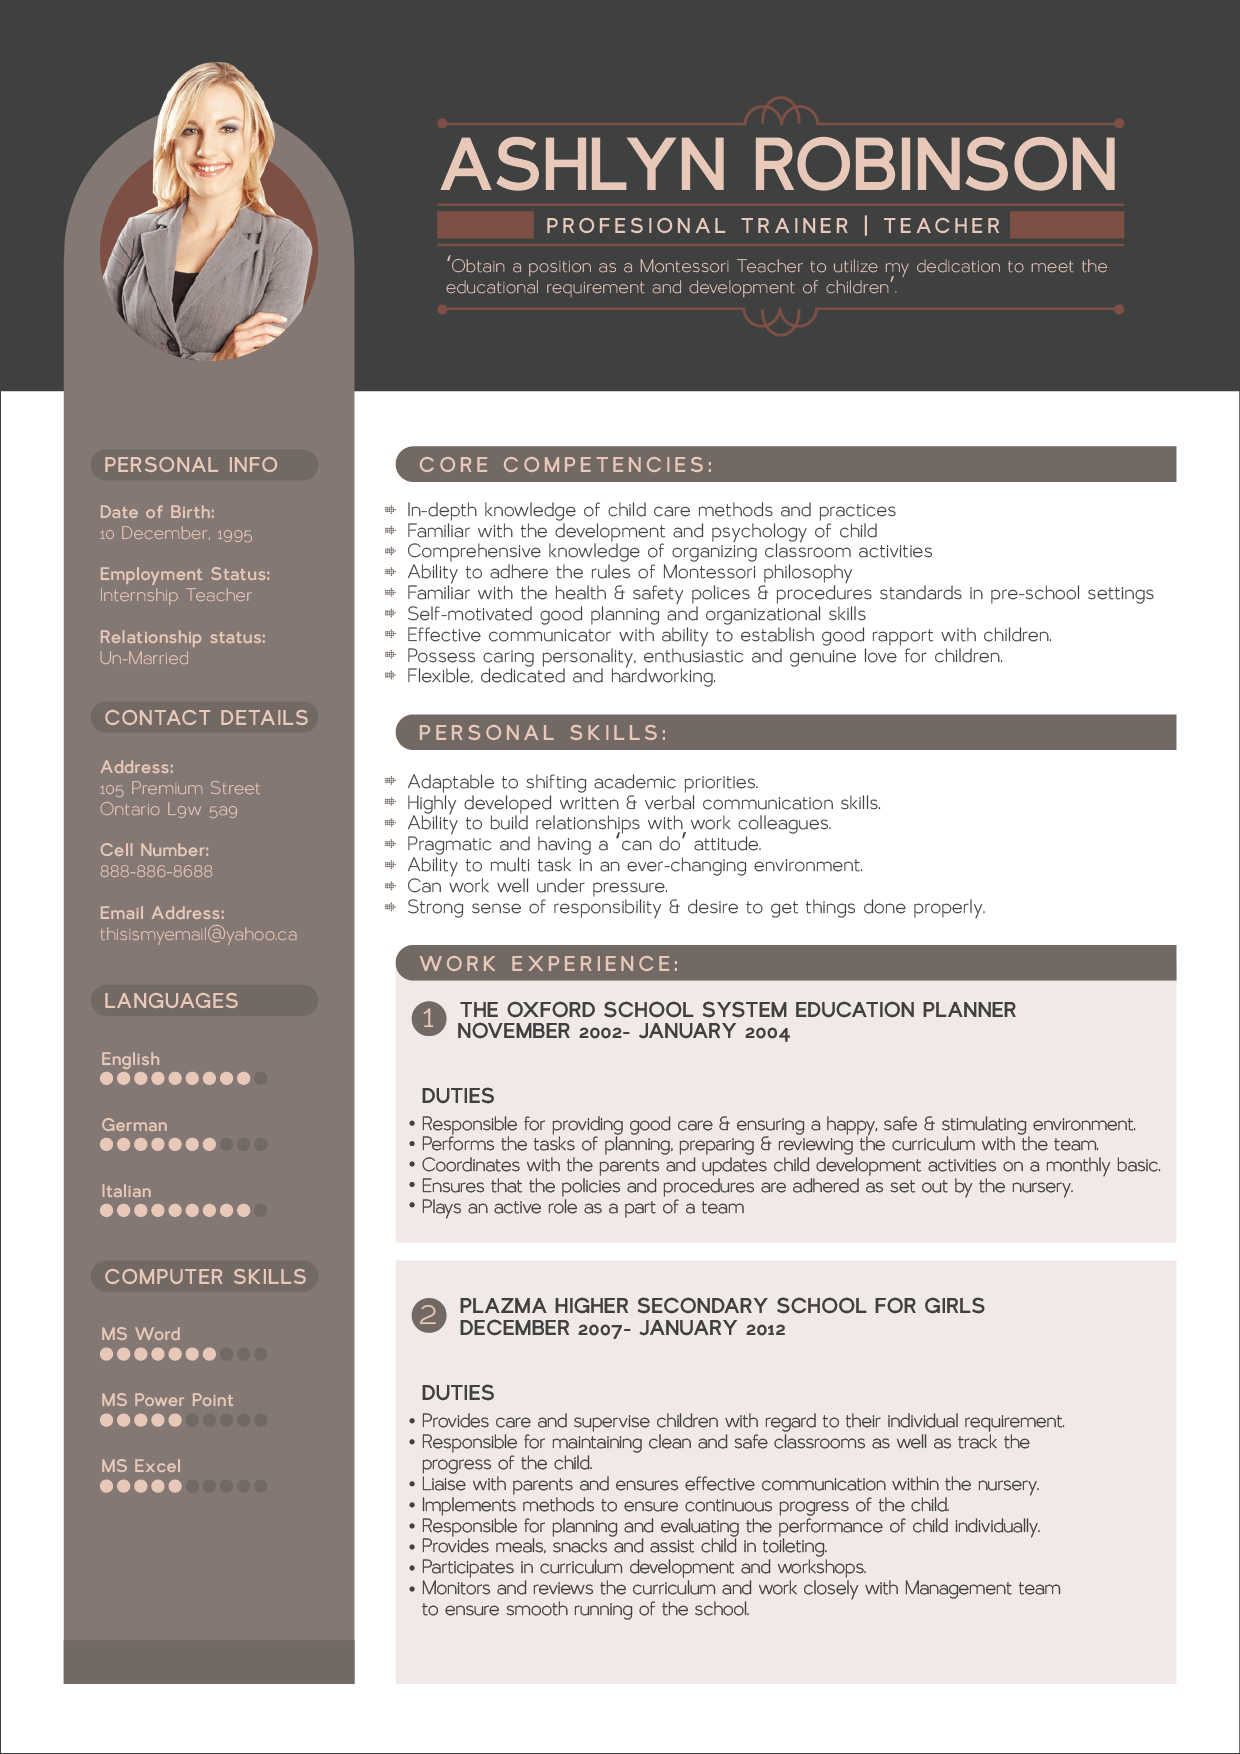 Resume Format Design Free Resume Cv Design Template For Trainers And Teachers